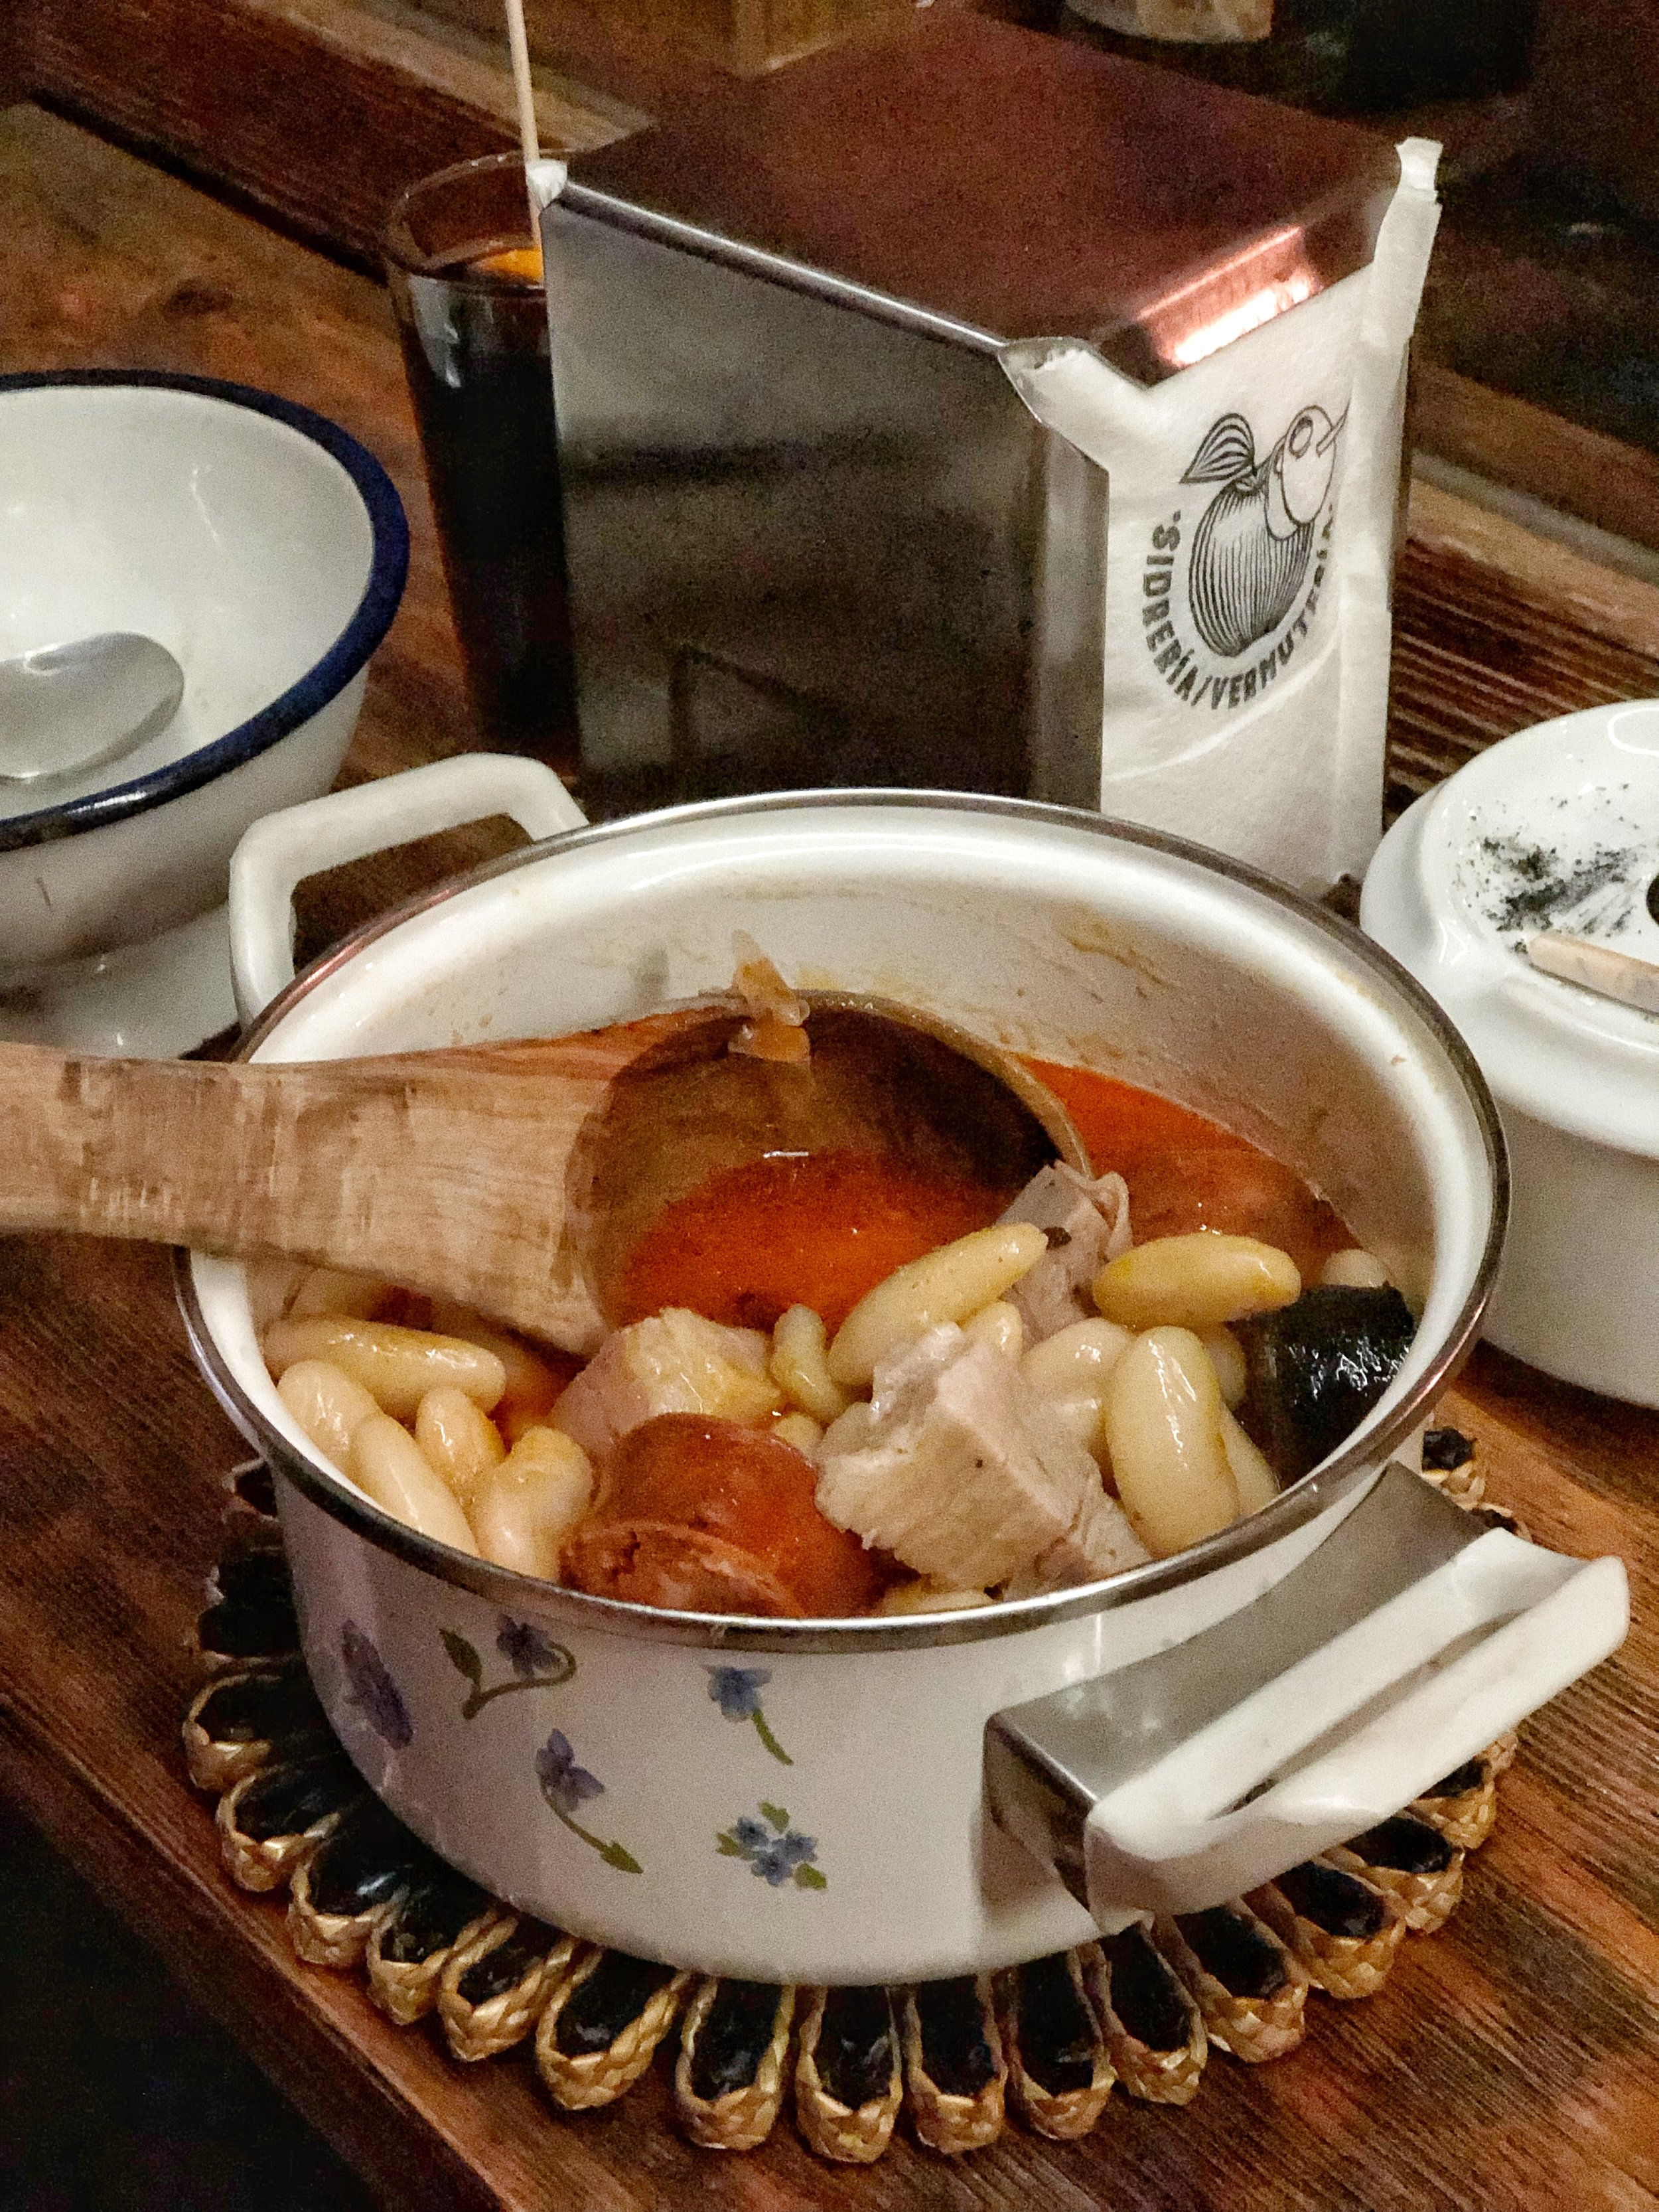 Fabada, a stew of giant beans with pork and sausage